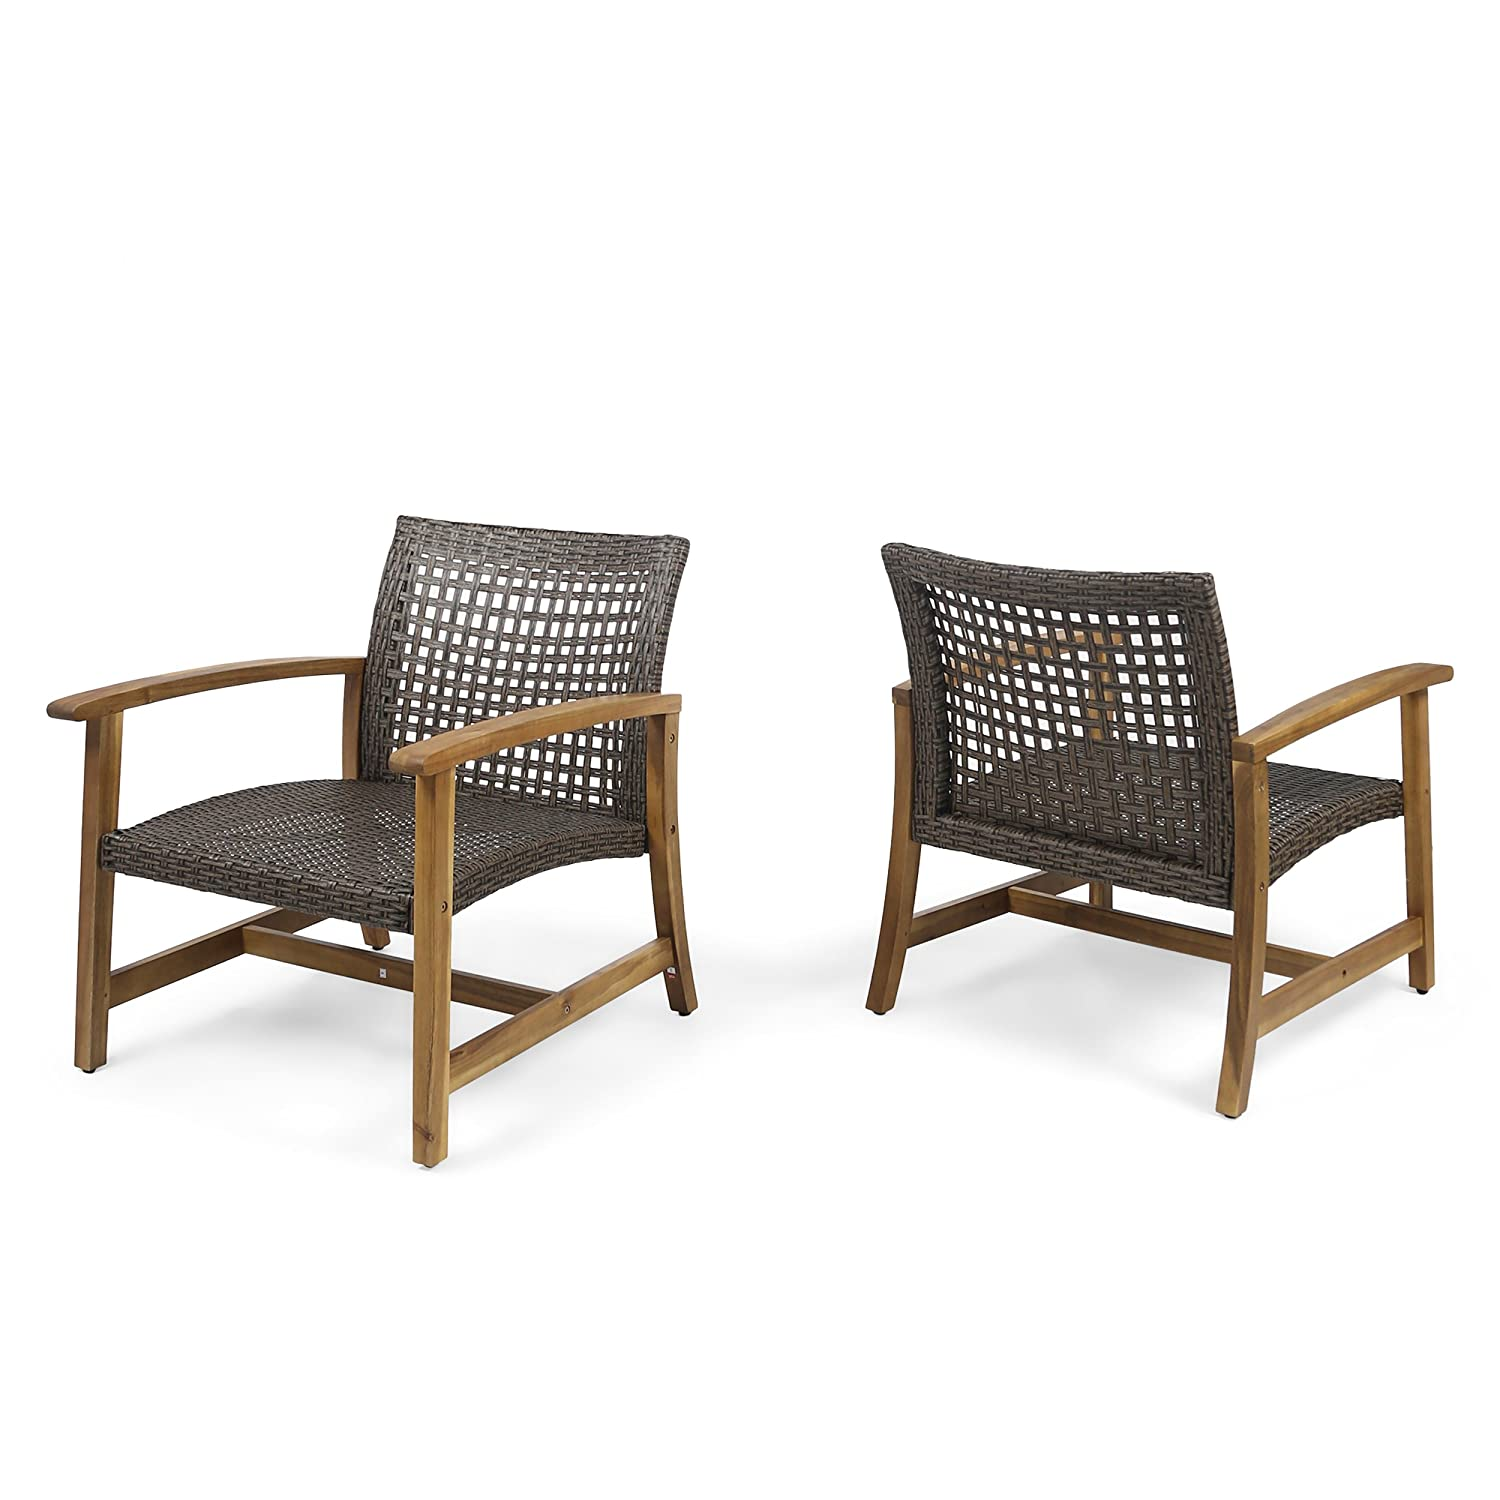 Amazon com great deal furniture viola outdoor wood and wicker club chairs set of 2 teak finish and mixed mocha garden outdoor